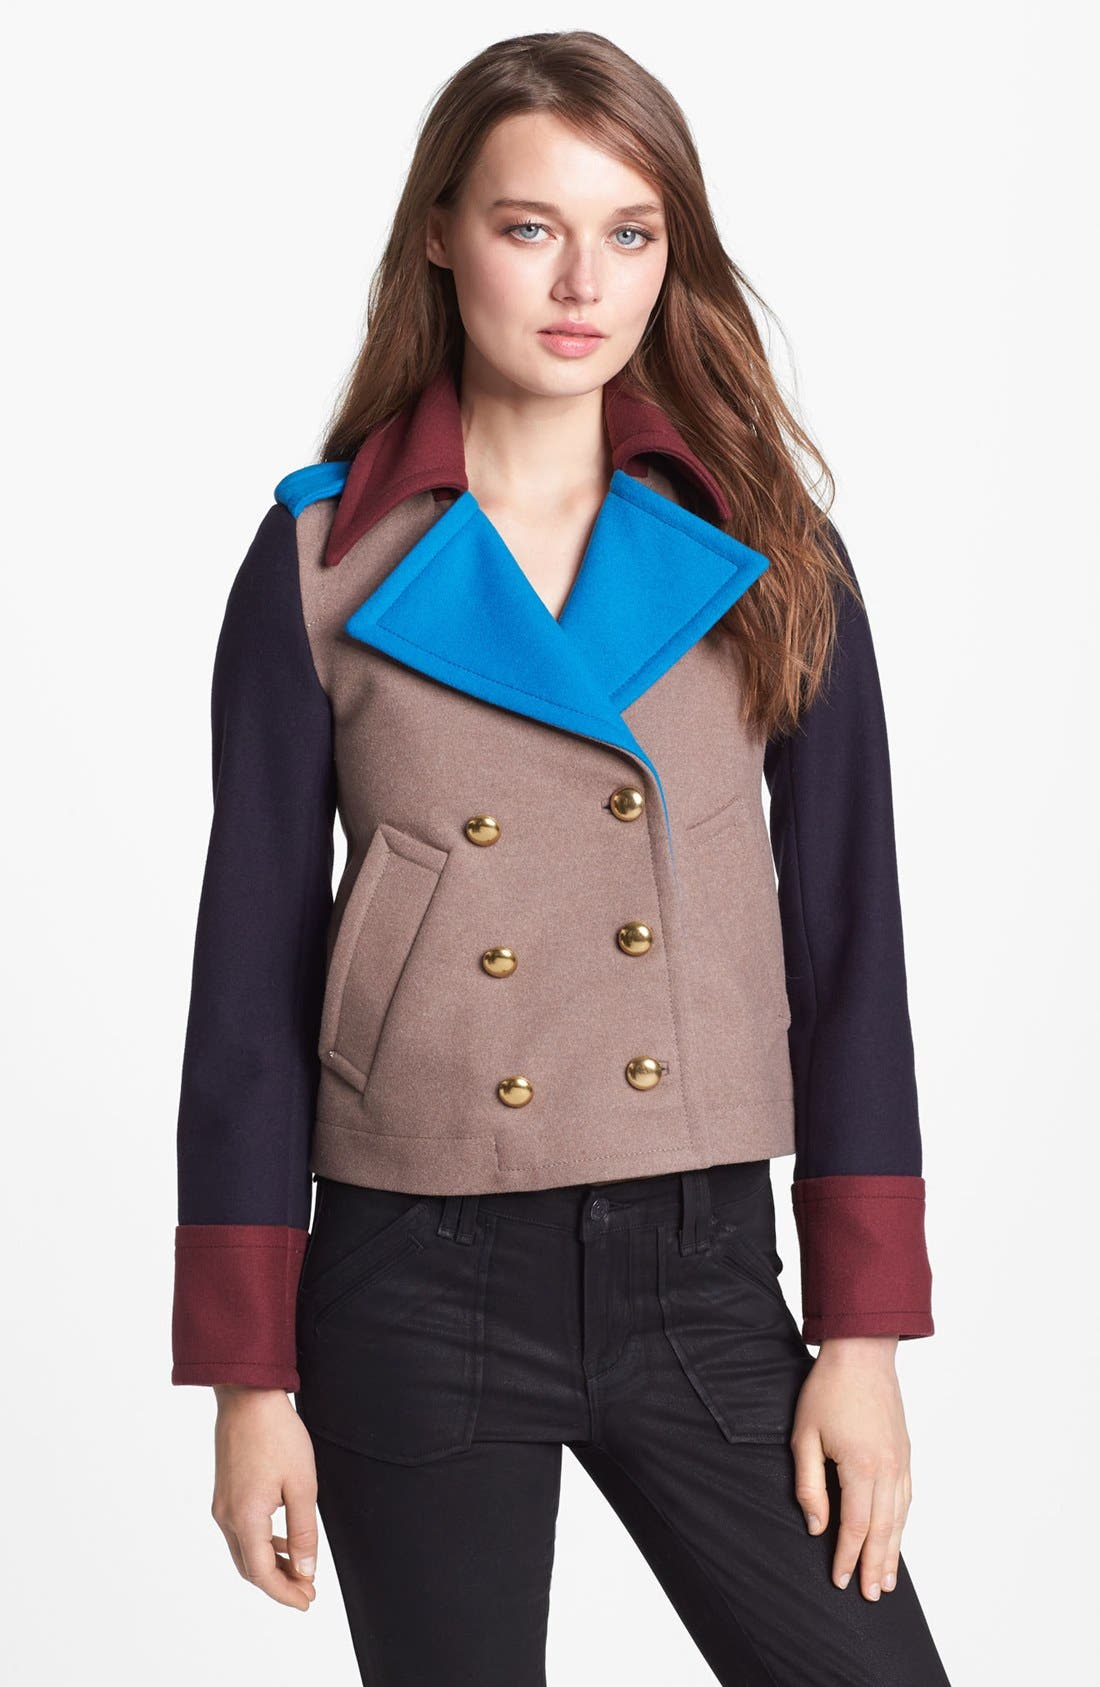 Main Image - MARC BY MARC JACOBS 'Nicoletta' Colorblock Crop Jacket